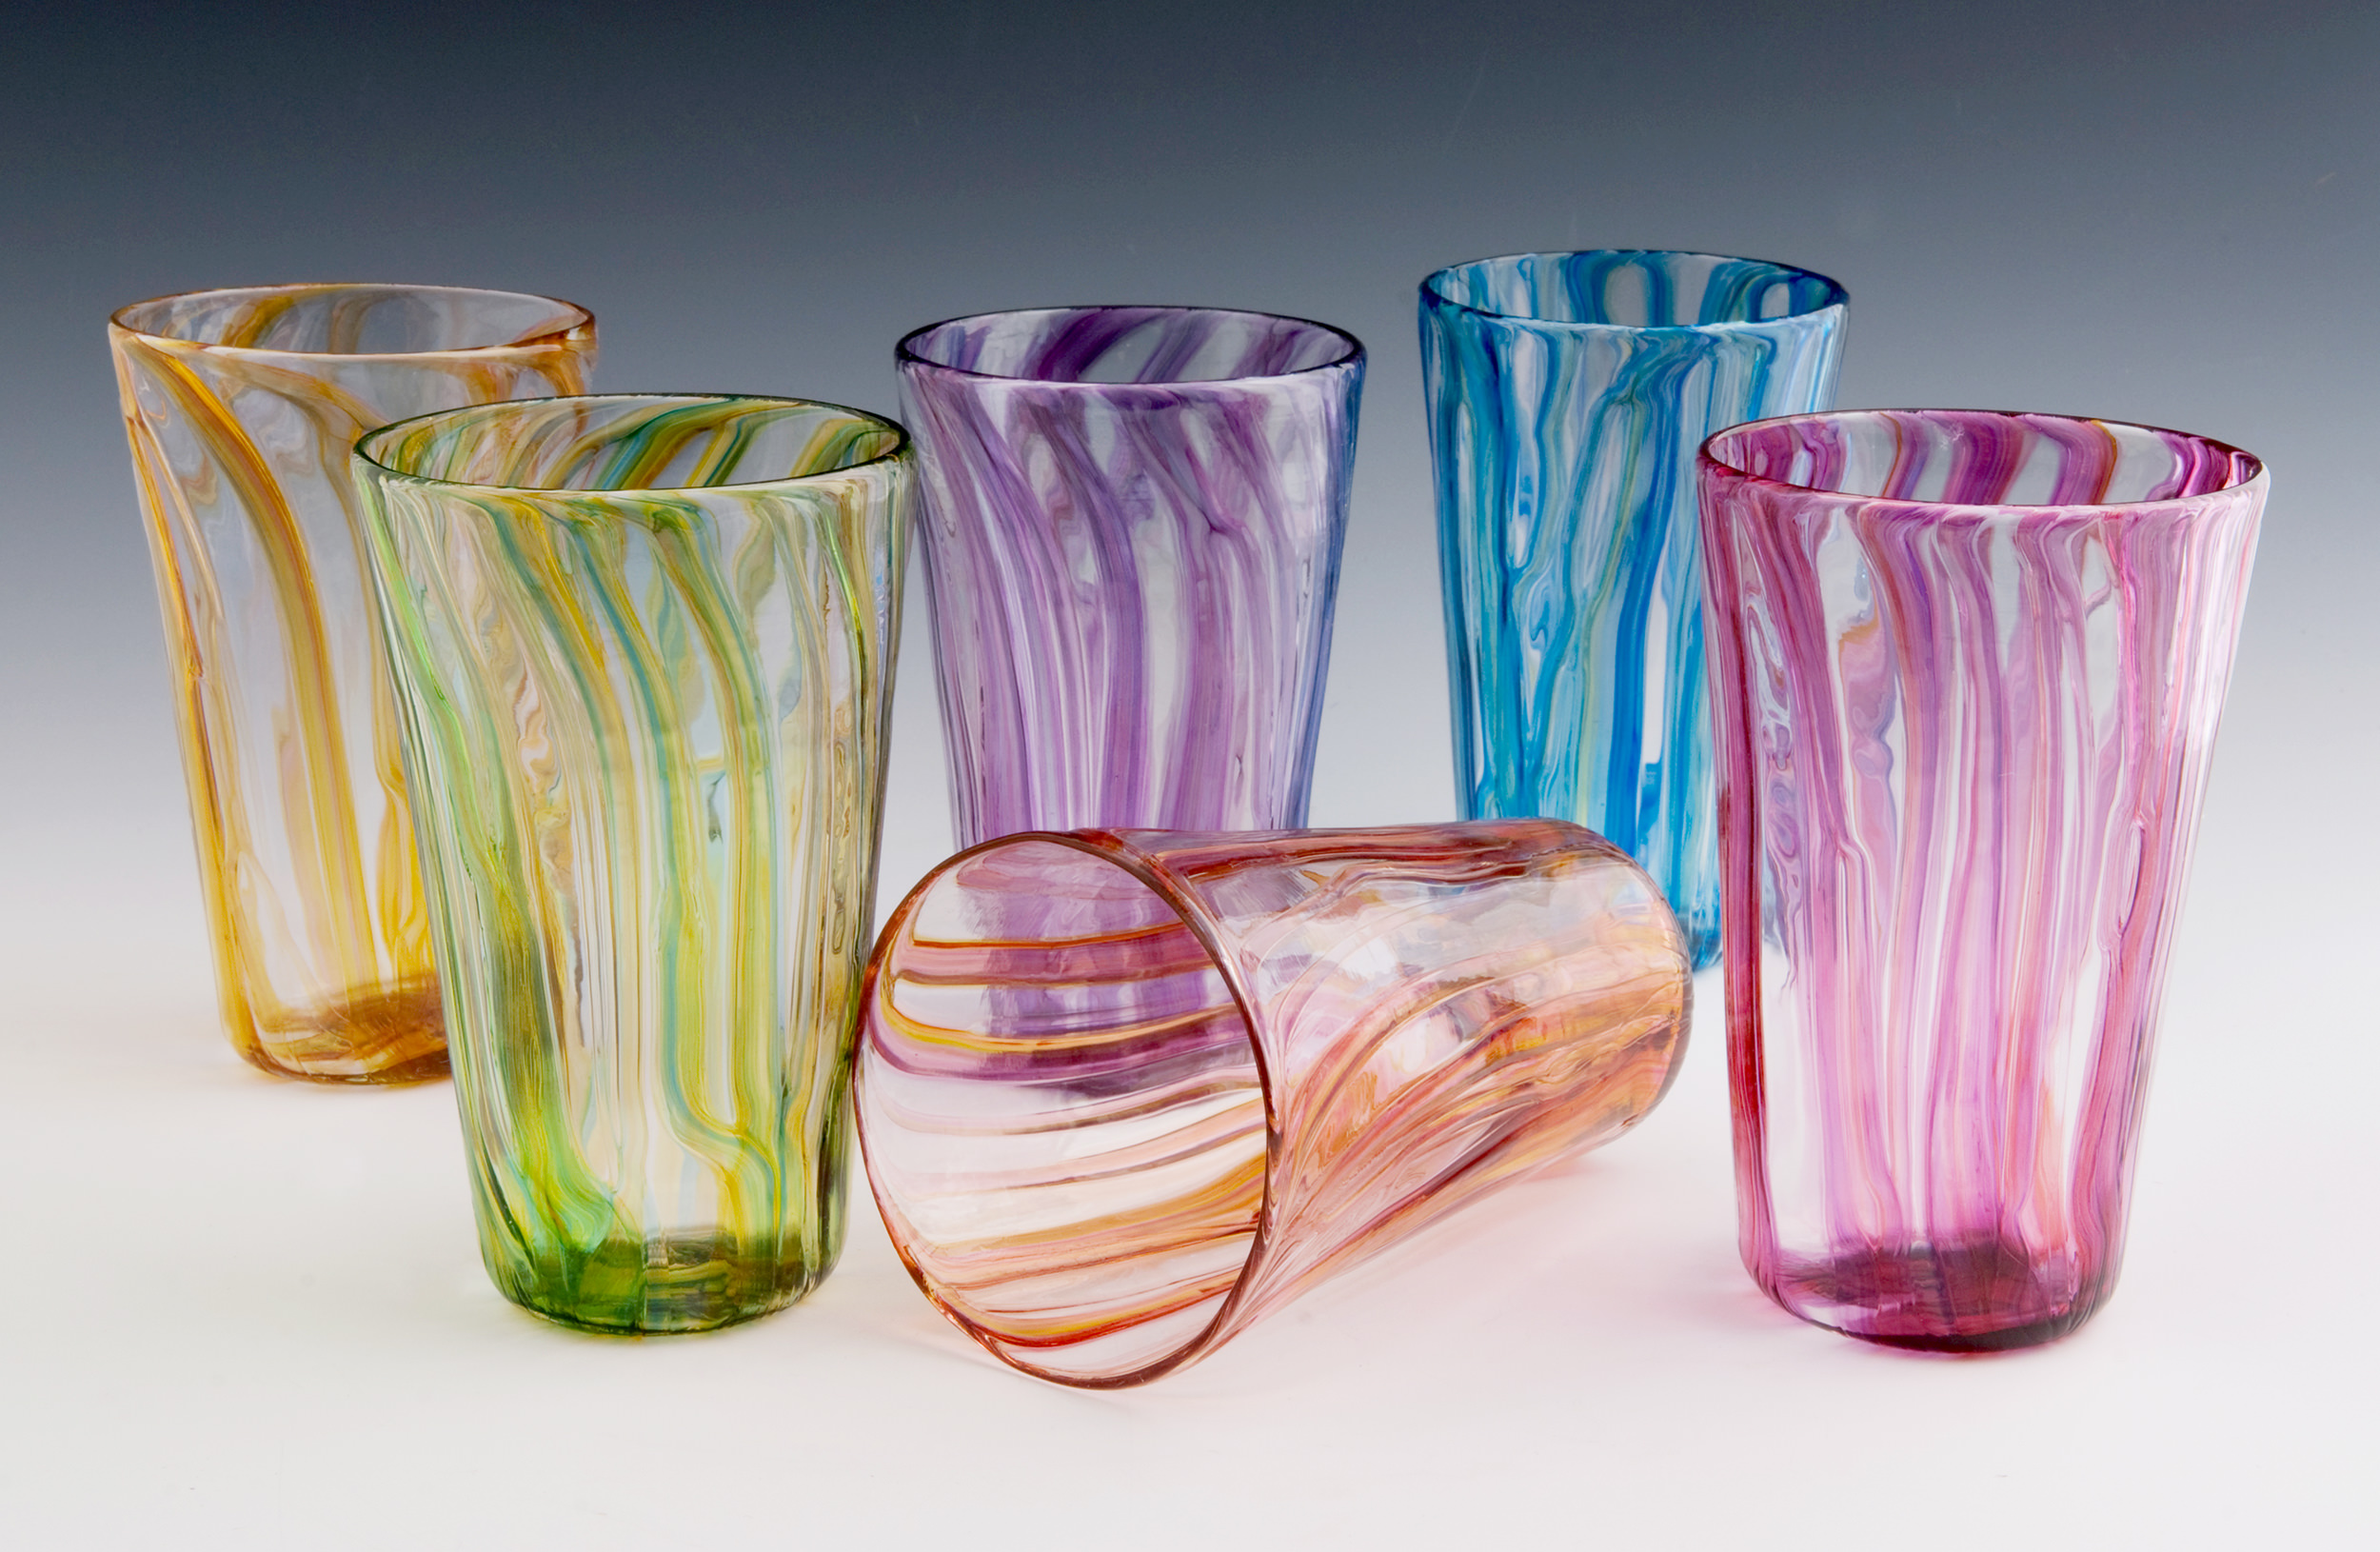 River Pint Glasses seen here in Gold, Lime, Purple, Peach, Blue, and Red Ribbons (left to right).